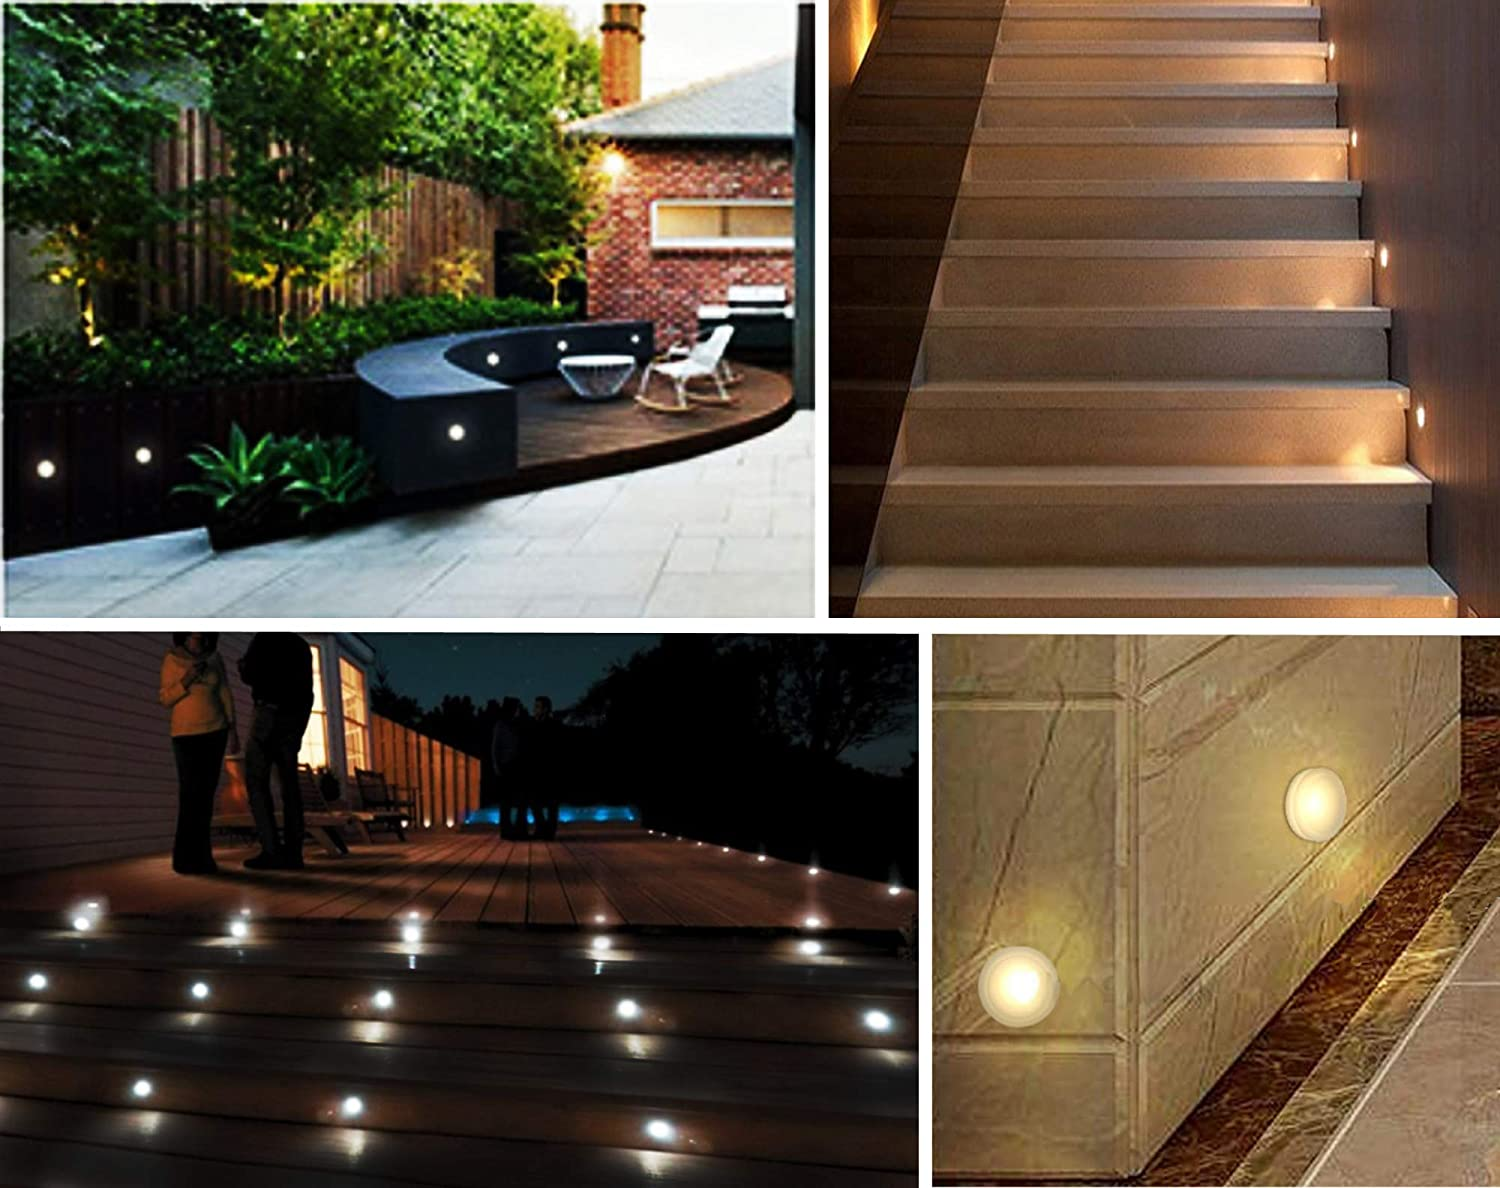 CNBRIGHTER LED Recessed Wall Lamp Aluminum 12V-24V DC Outdoor IP67 Waterproof,Acrylic 3000K Moonlight,1 Watt Warm White Landscape Lighting for Porch Deck Stair Step Foot of Wall